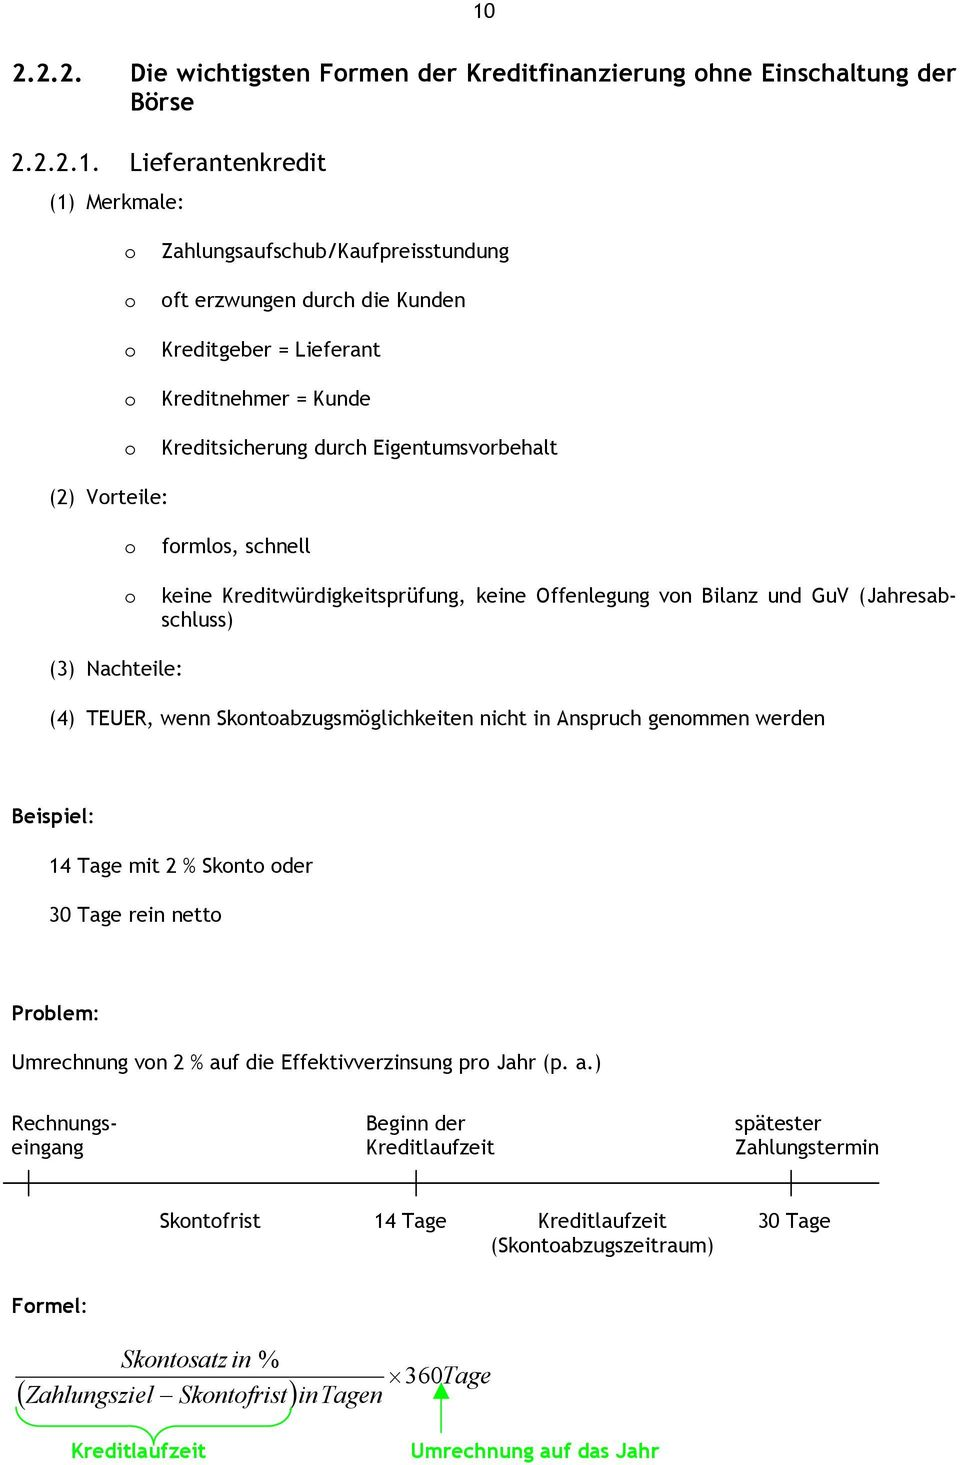 Charmant Pdf Vorschlagsvorlage Galerie - Entry Level Resume Vorlagen ...